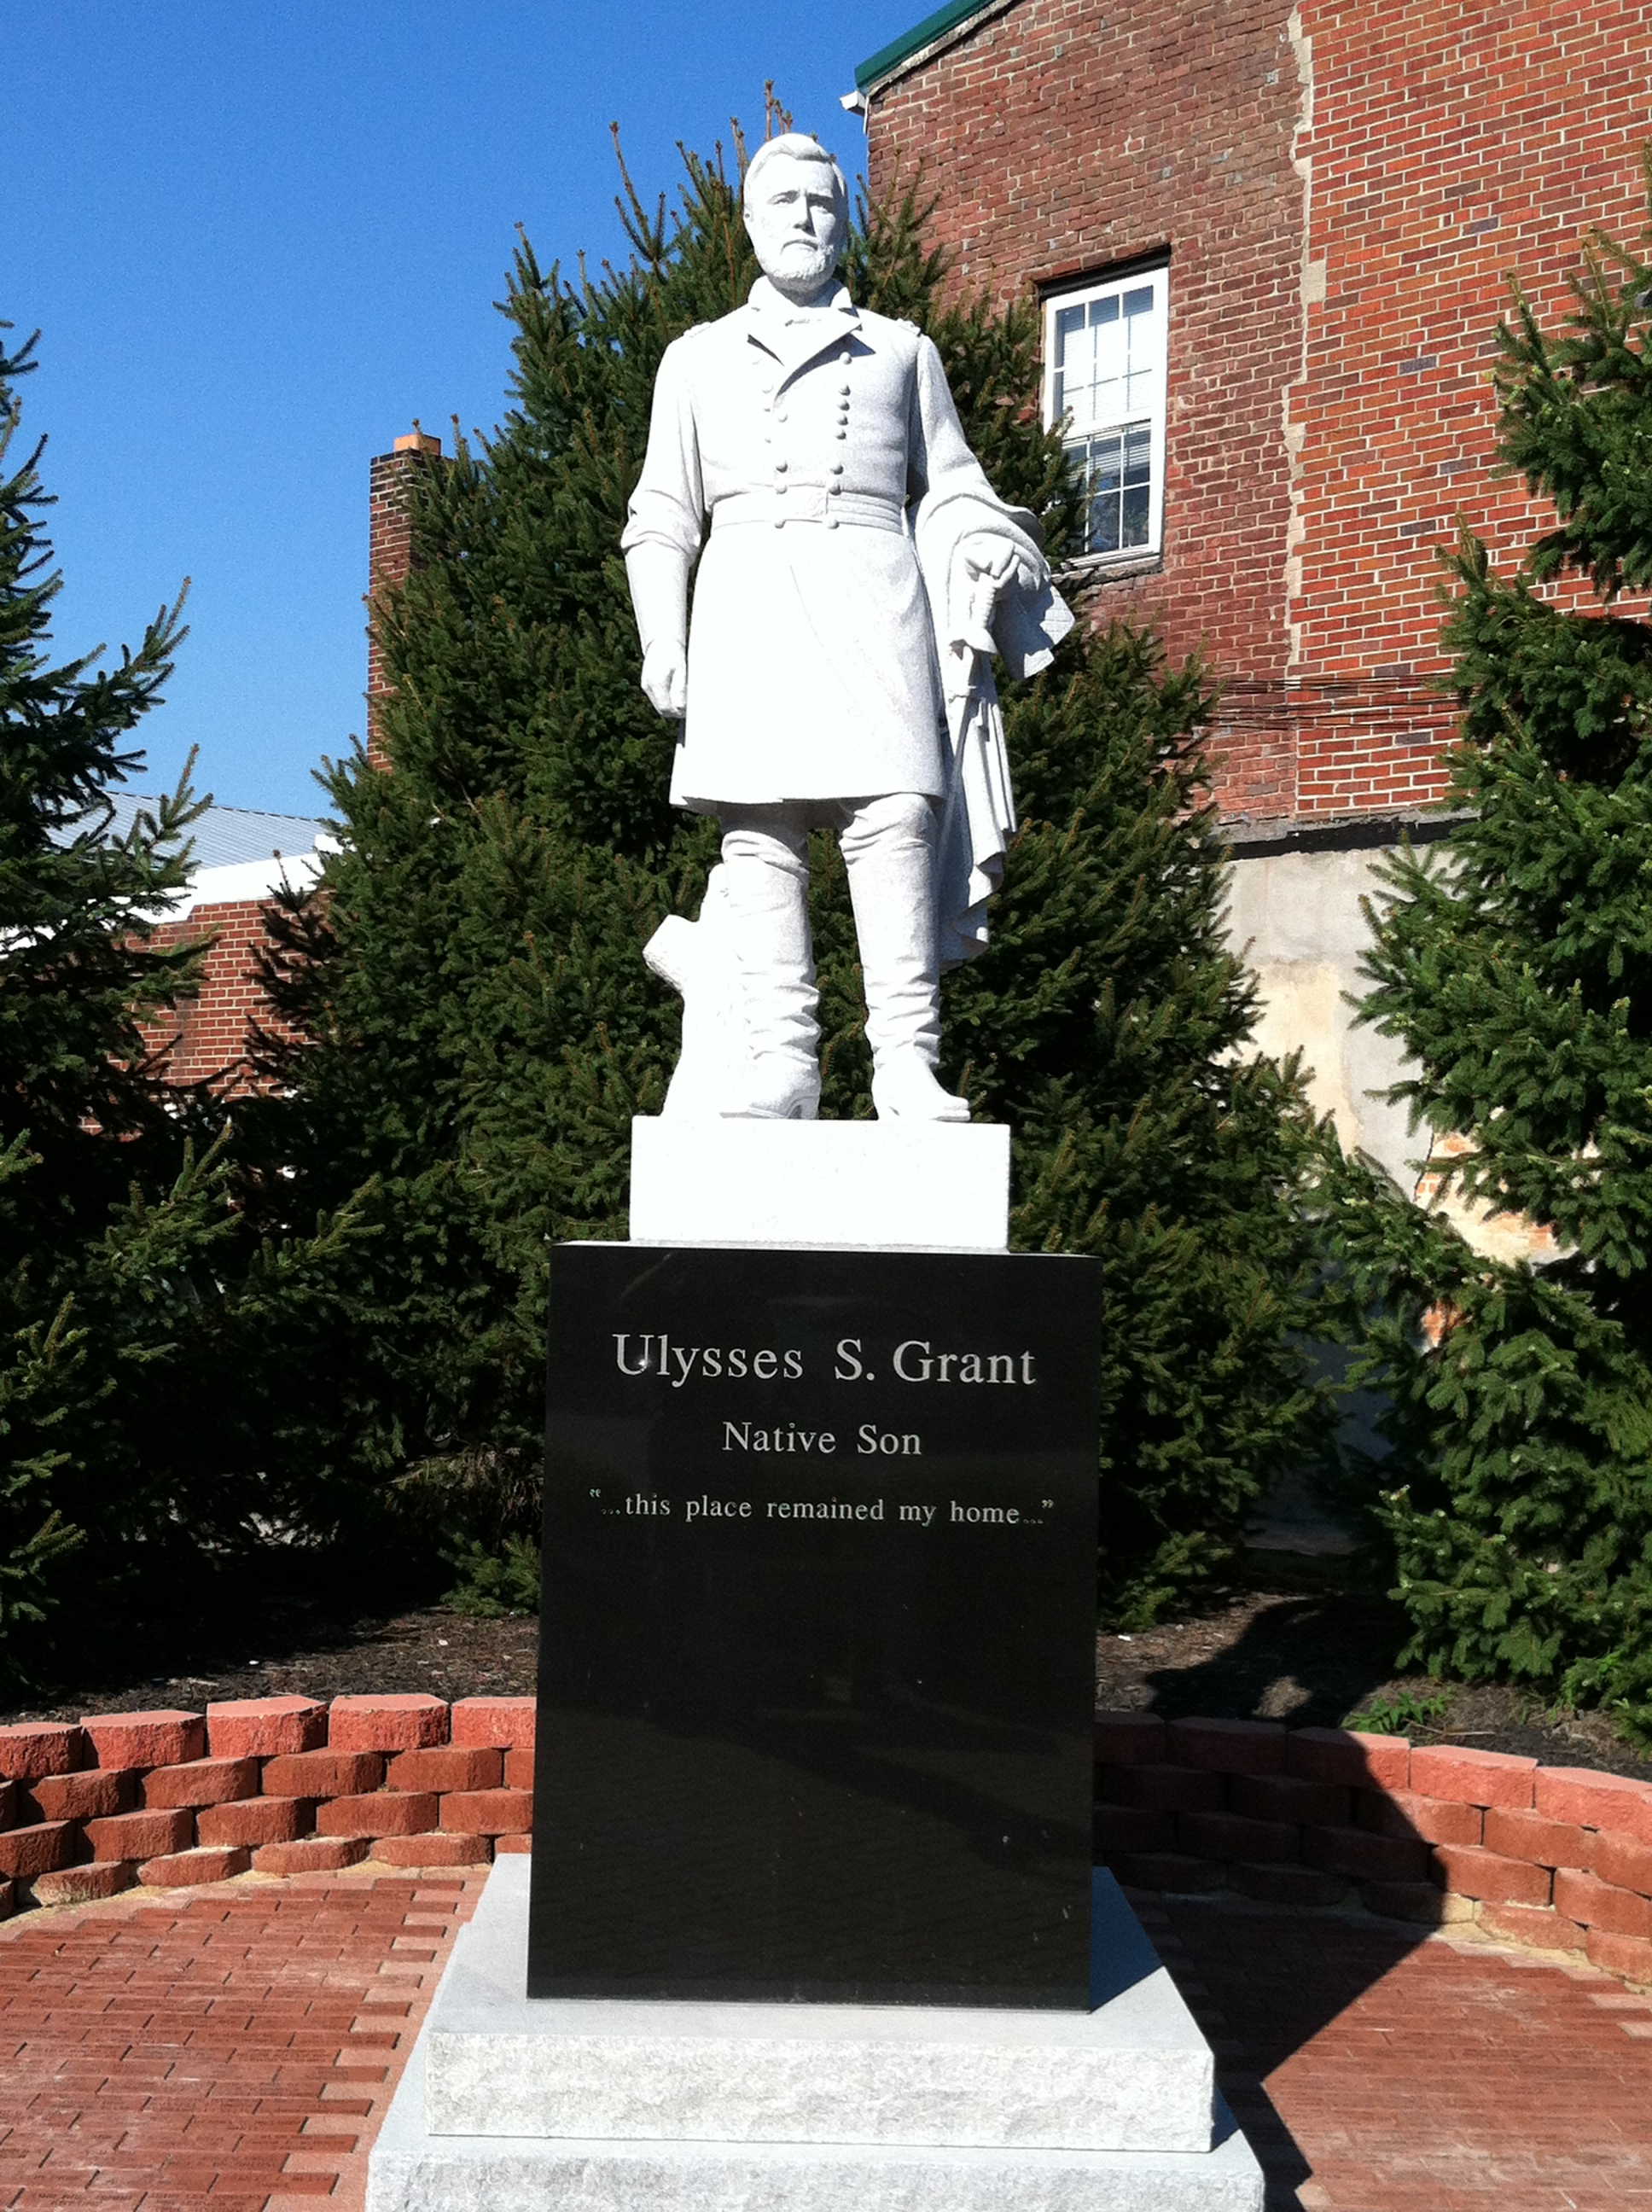 Statue of Ulysses S. Grant